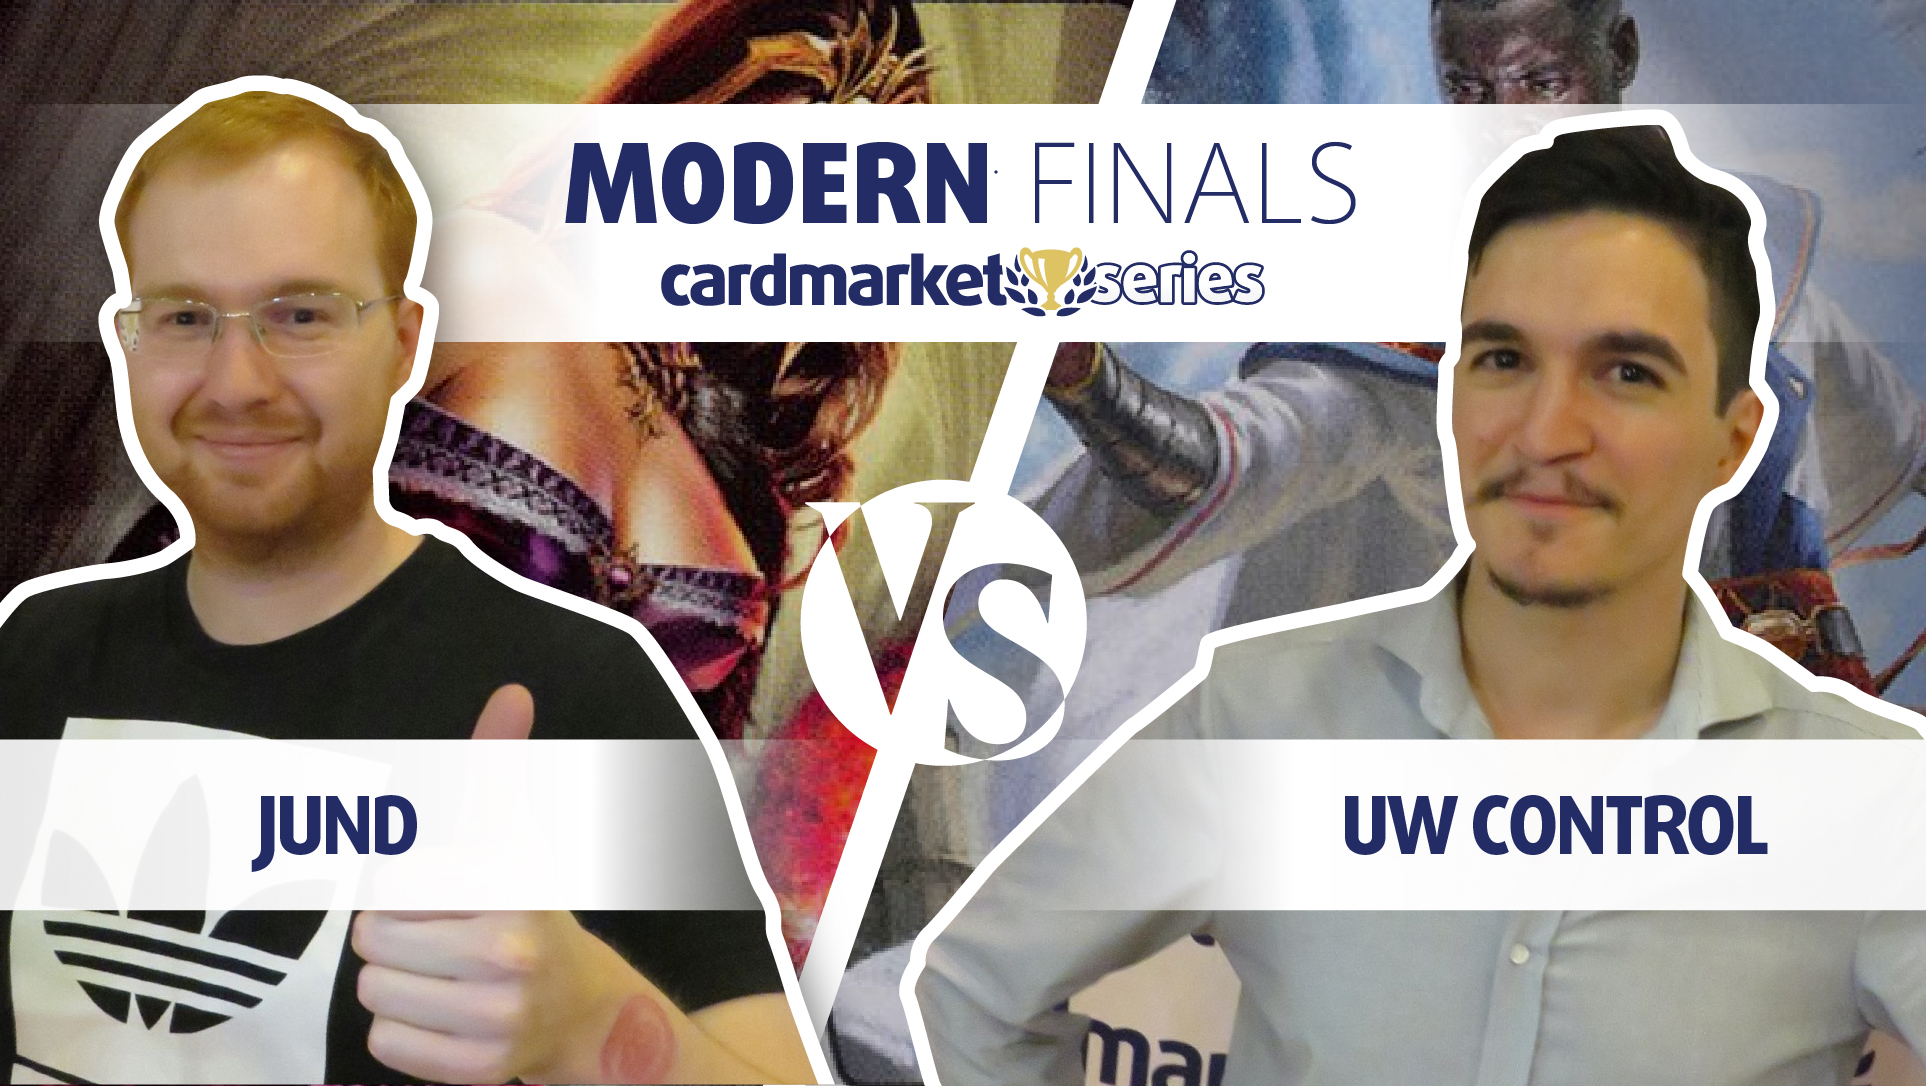 Finals Video Feature Match: Sander vs. Baier